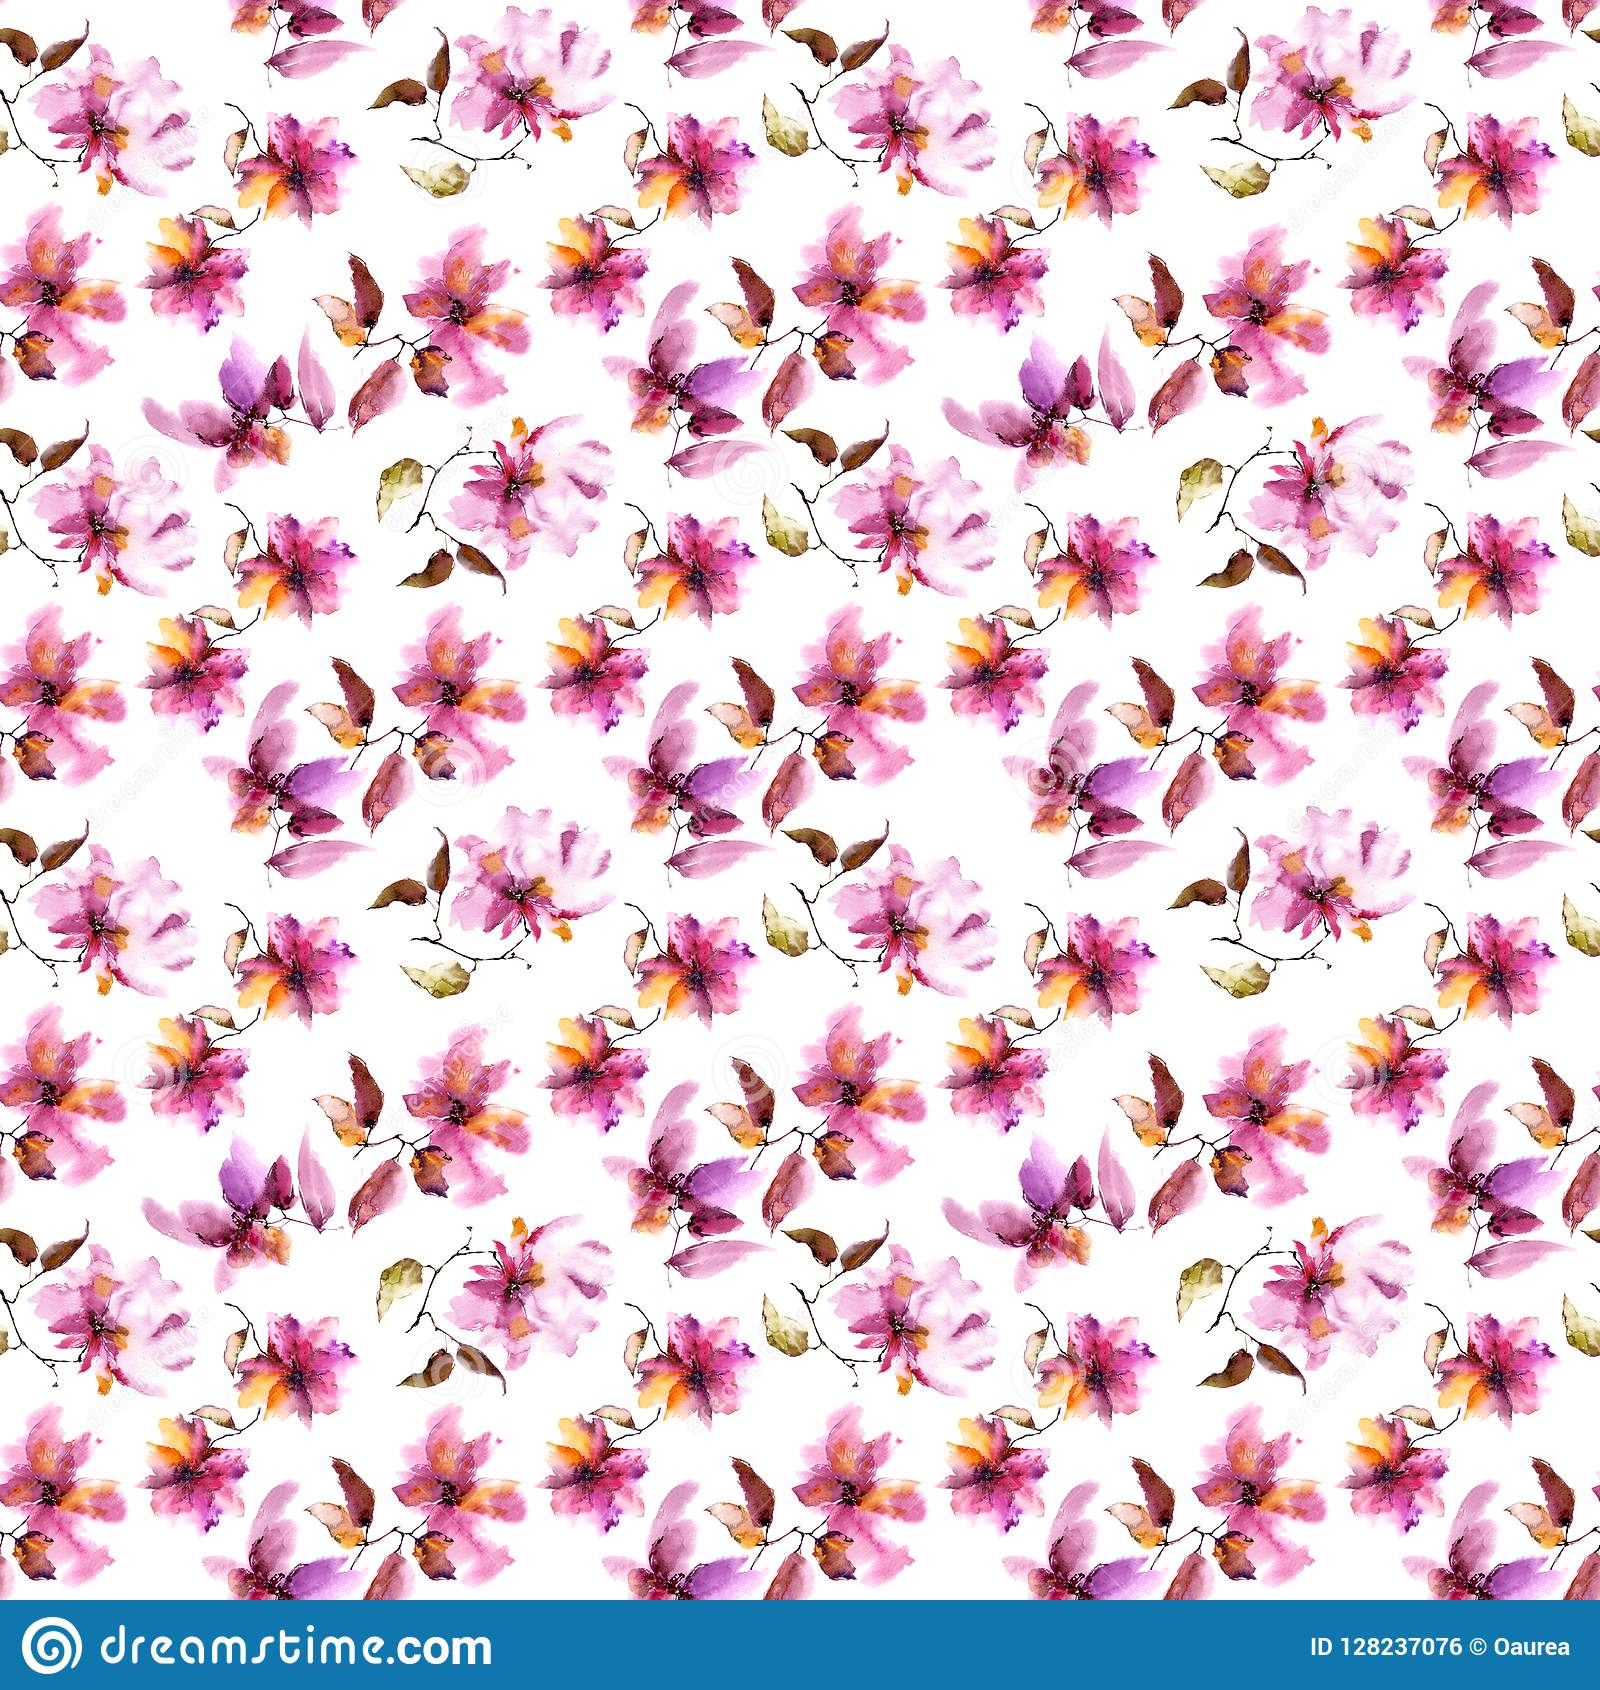 Seamless Floral Background Pink Flowers Pattern Transparent